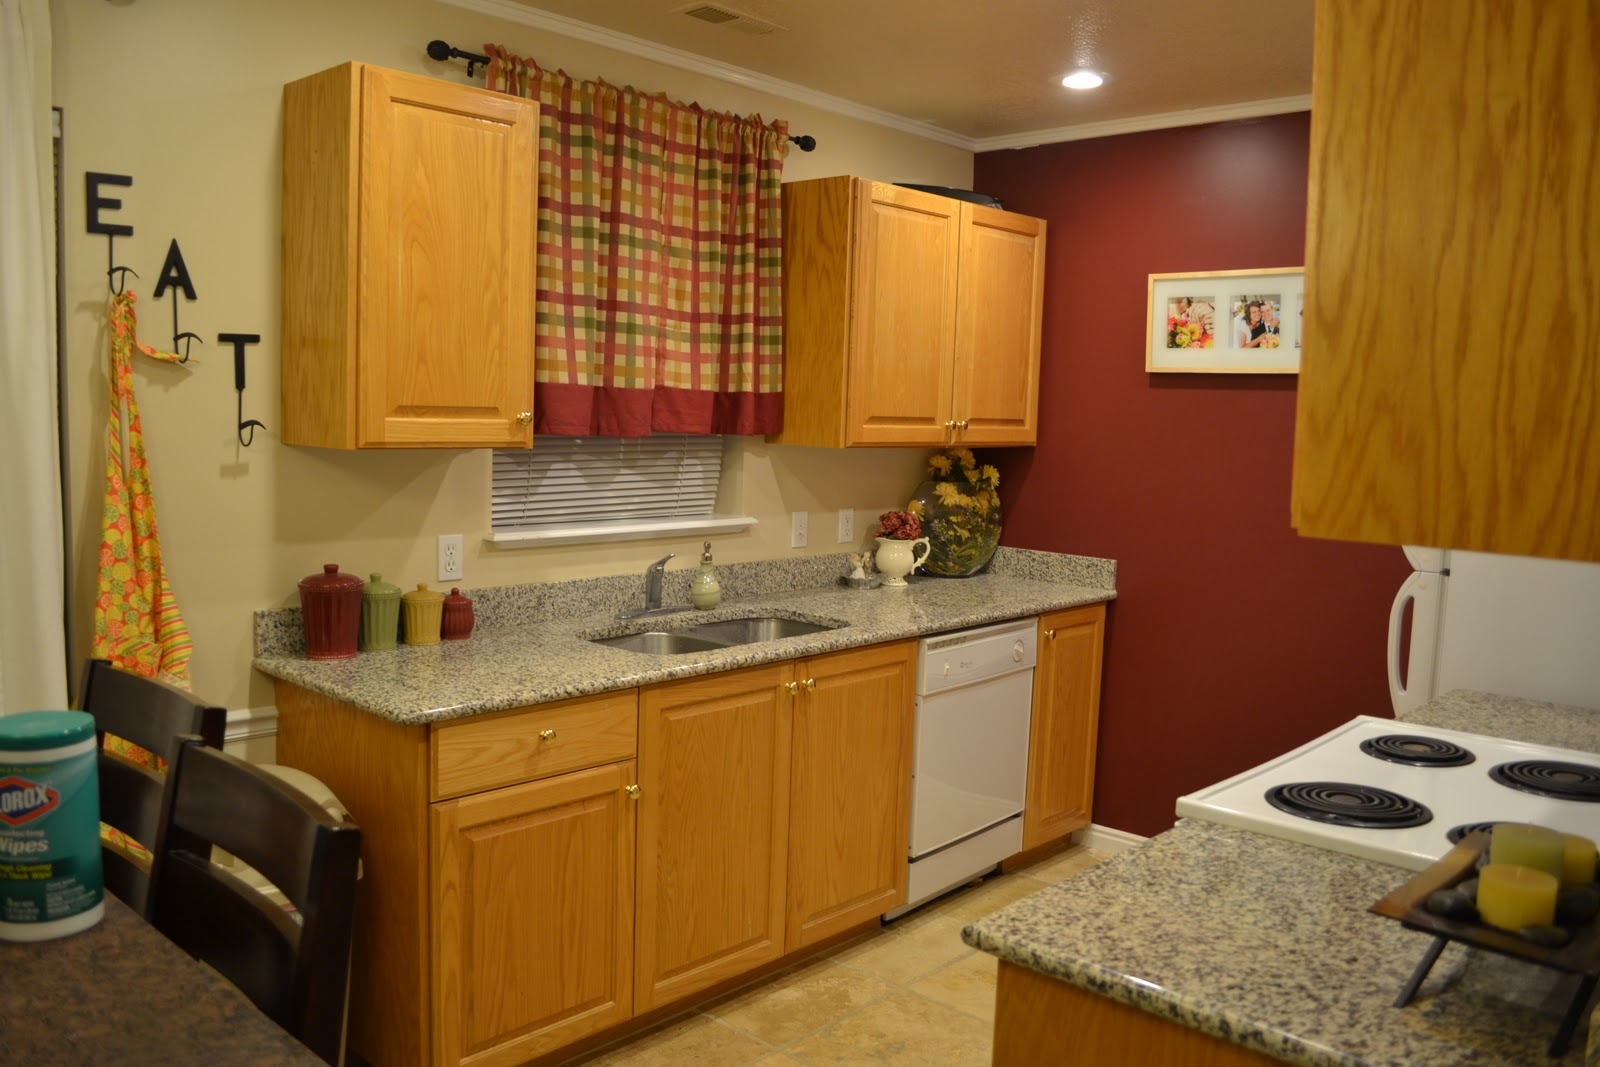 Honey Oak Cabinets with Granite